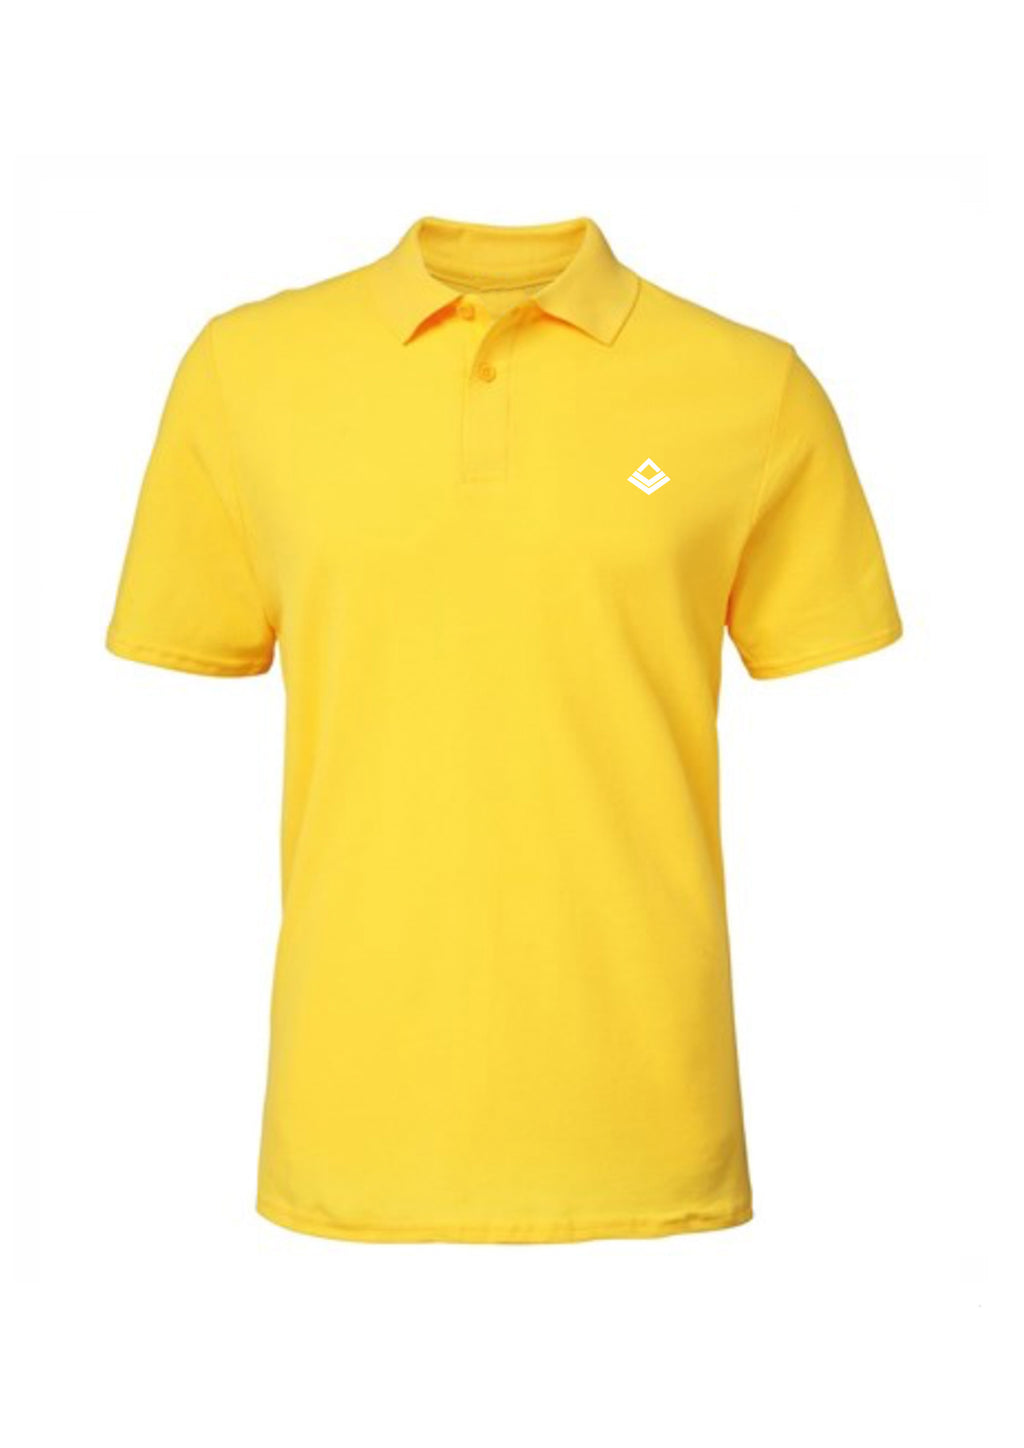 Swaggerlicious Daisy Simple Polo Shirt with White Logo